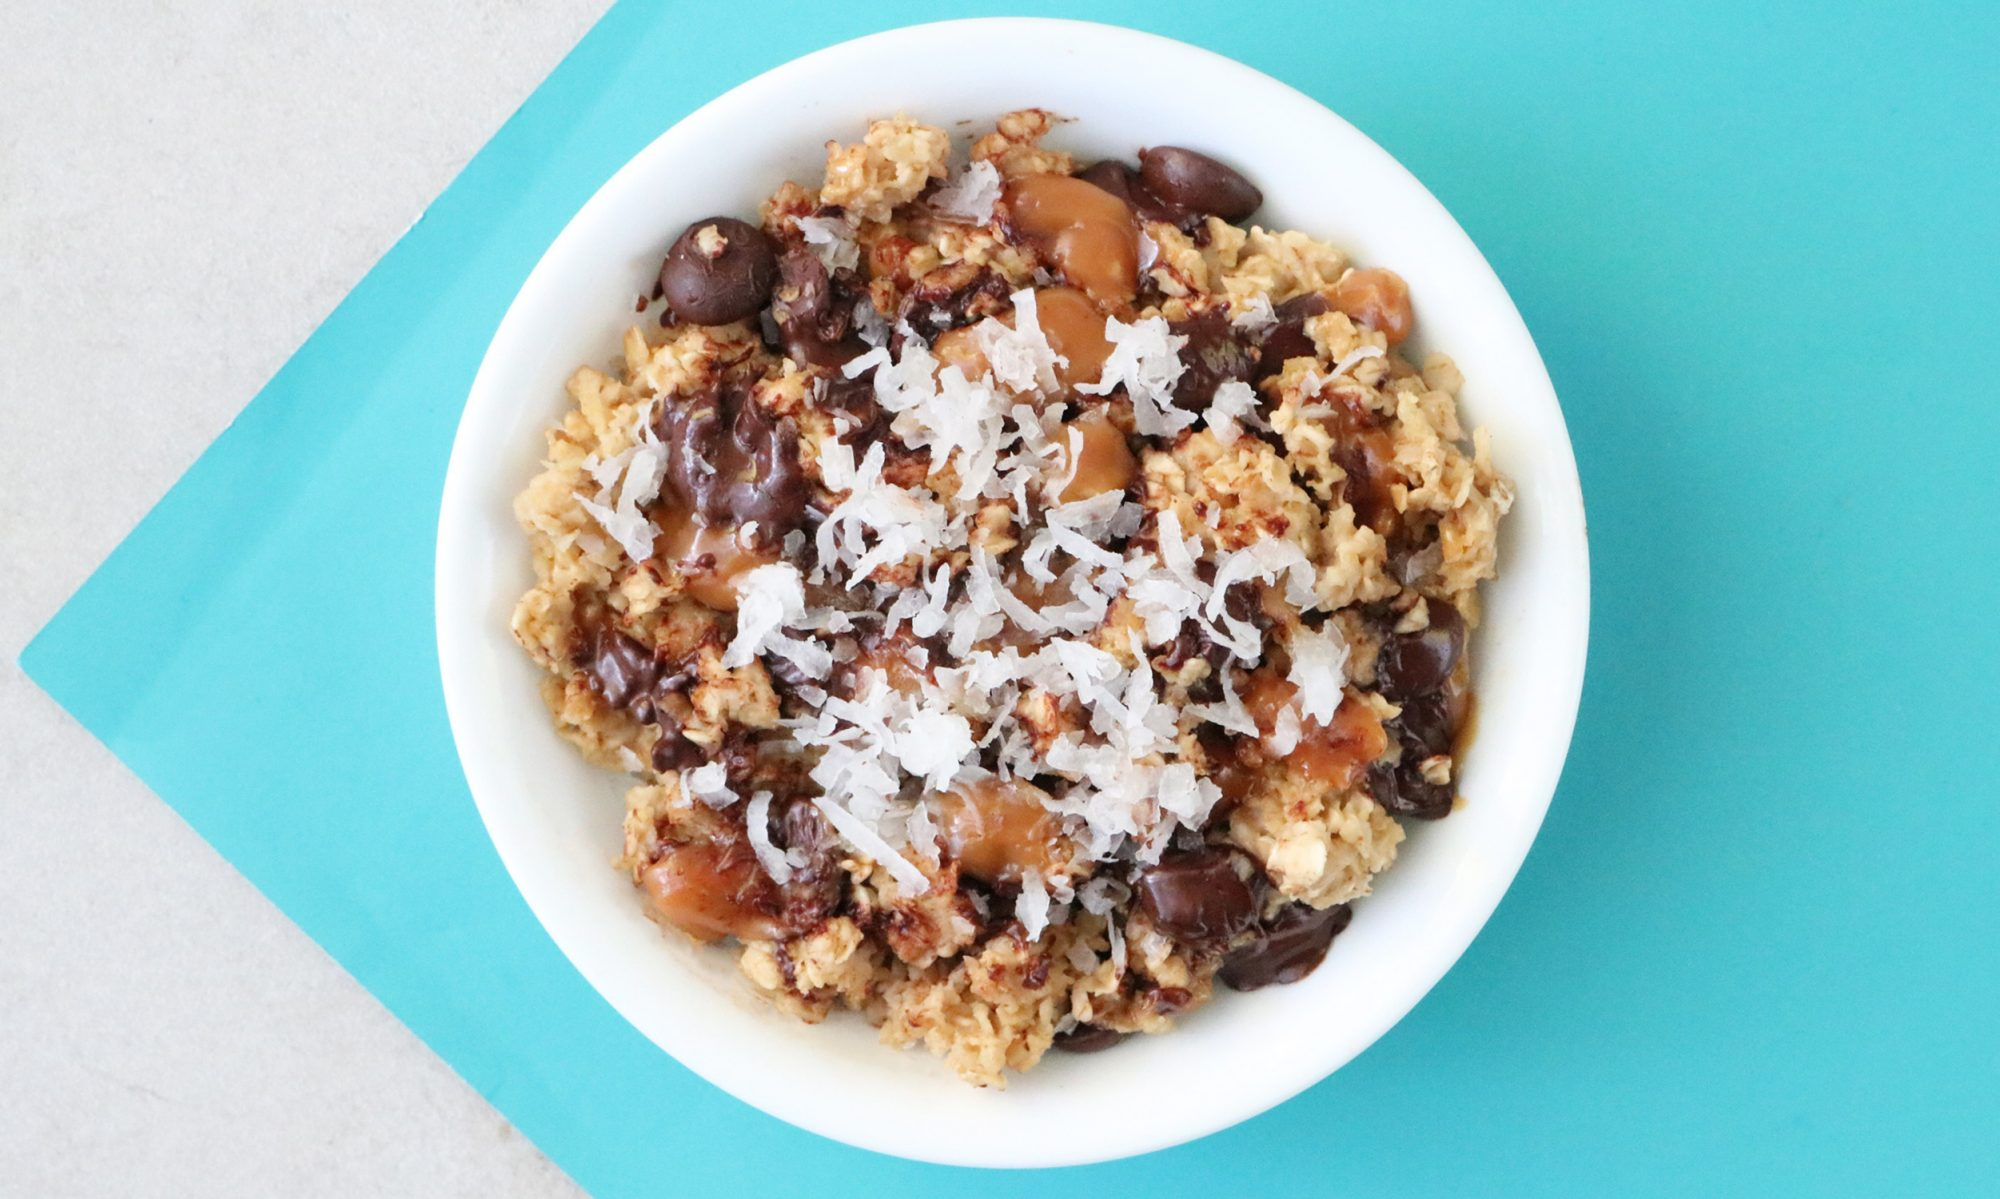 Make Oatmeal Inspired By the Best Girl Scout Cookie